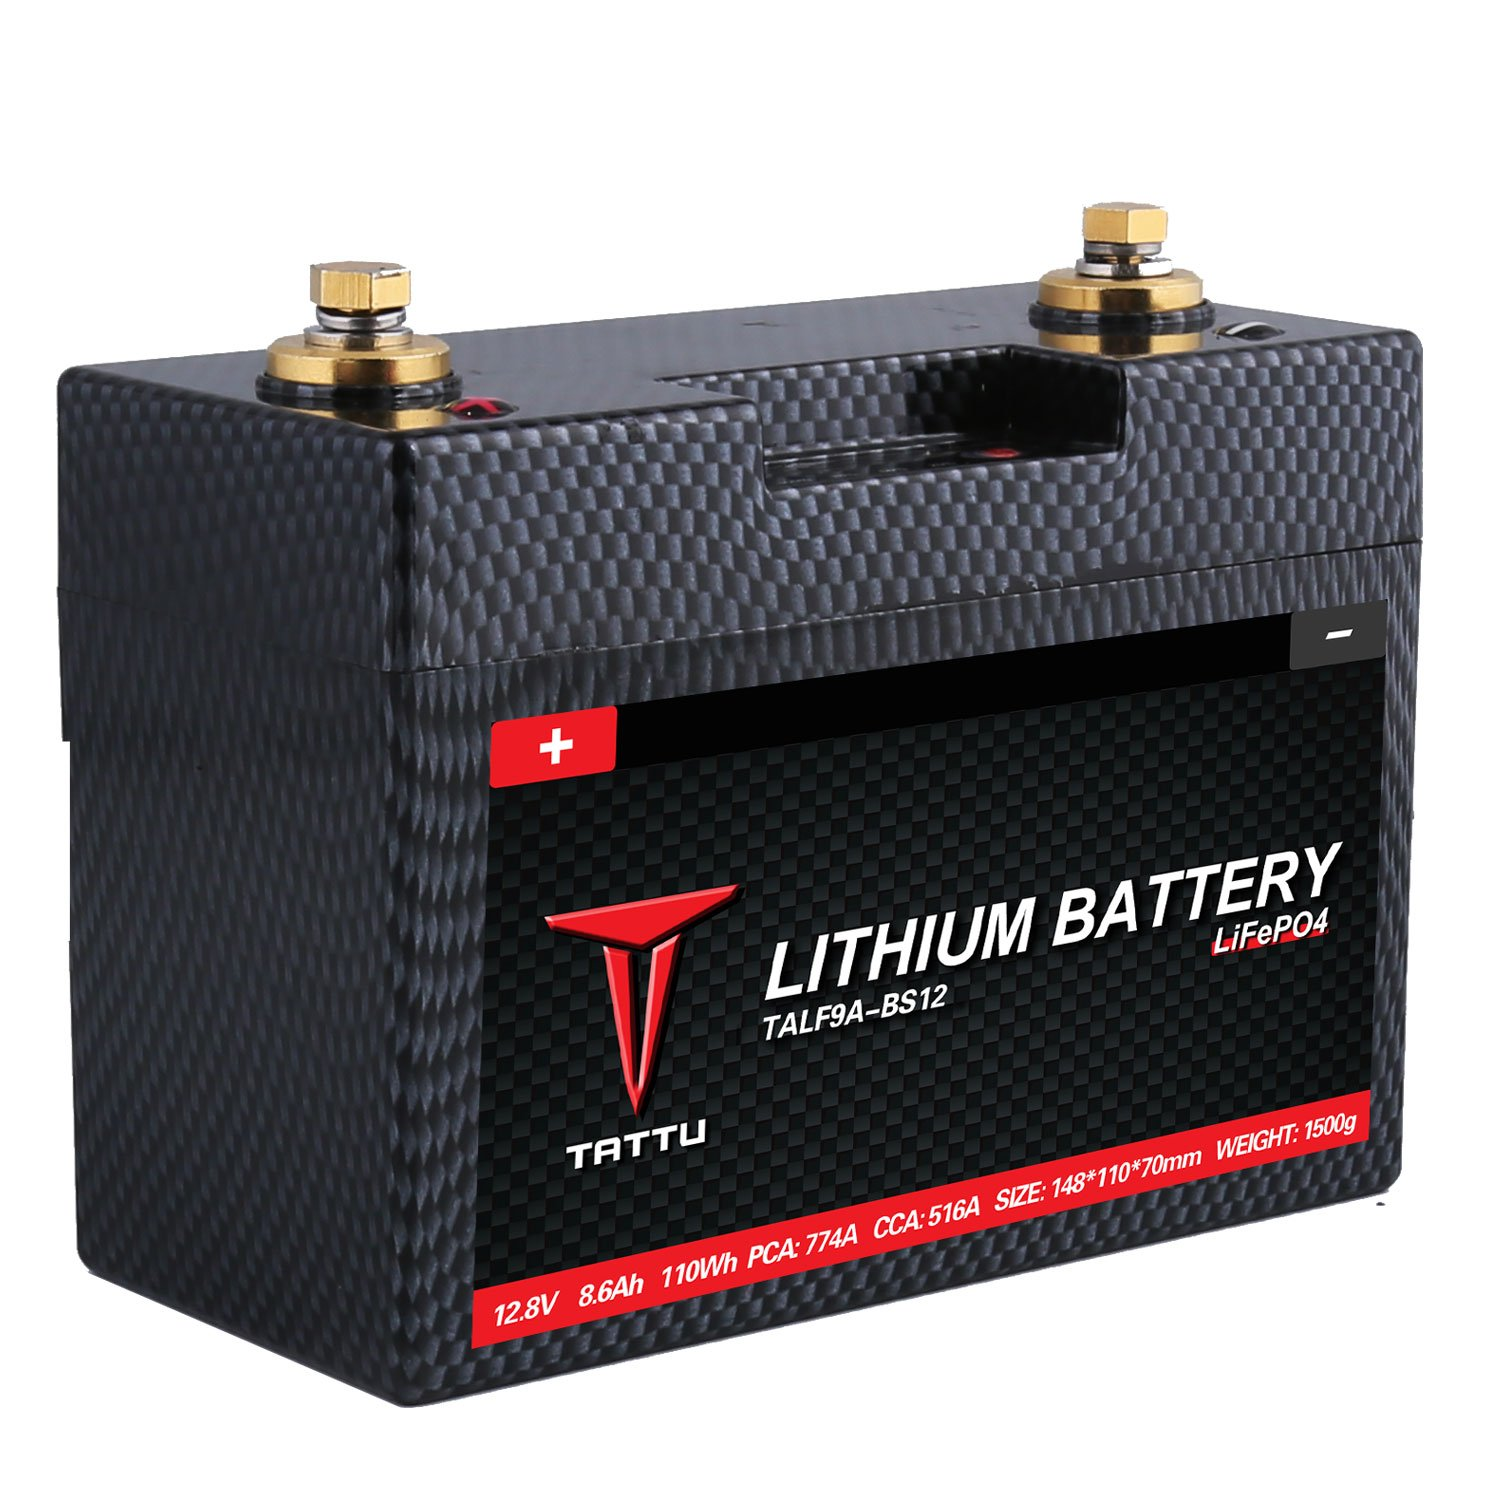 Clearance sale-Tattu LiFePO4 12V 8.6A Motorsport Street Bike Replacement Lithium Iron Phosphate Starting Battery for Power Sports Motorcycles Racing Lawn Mowers Scooters Utility Vehicles and Dirt Bike by TATTU